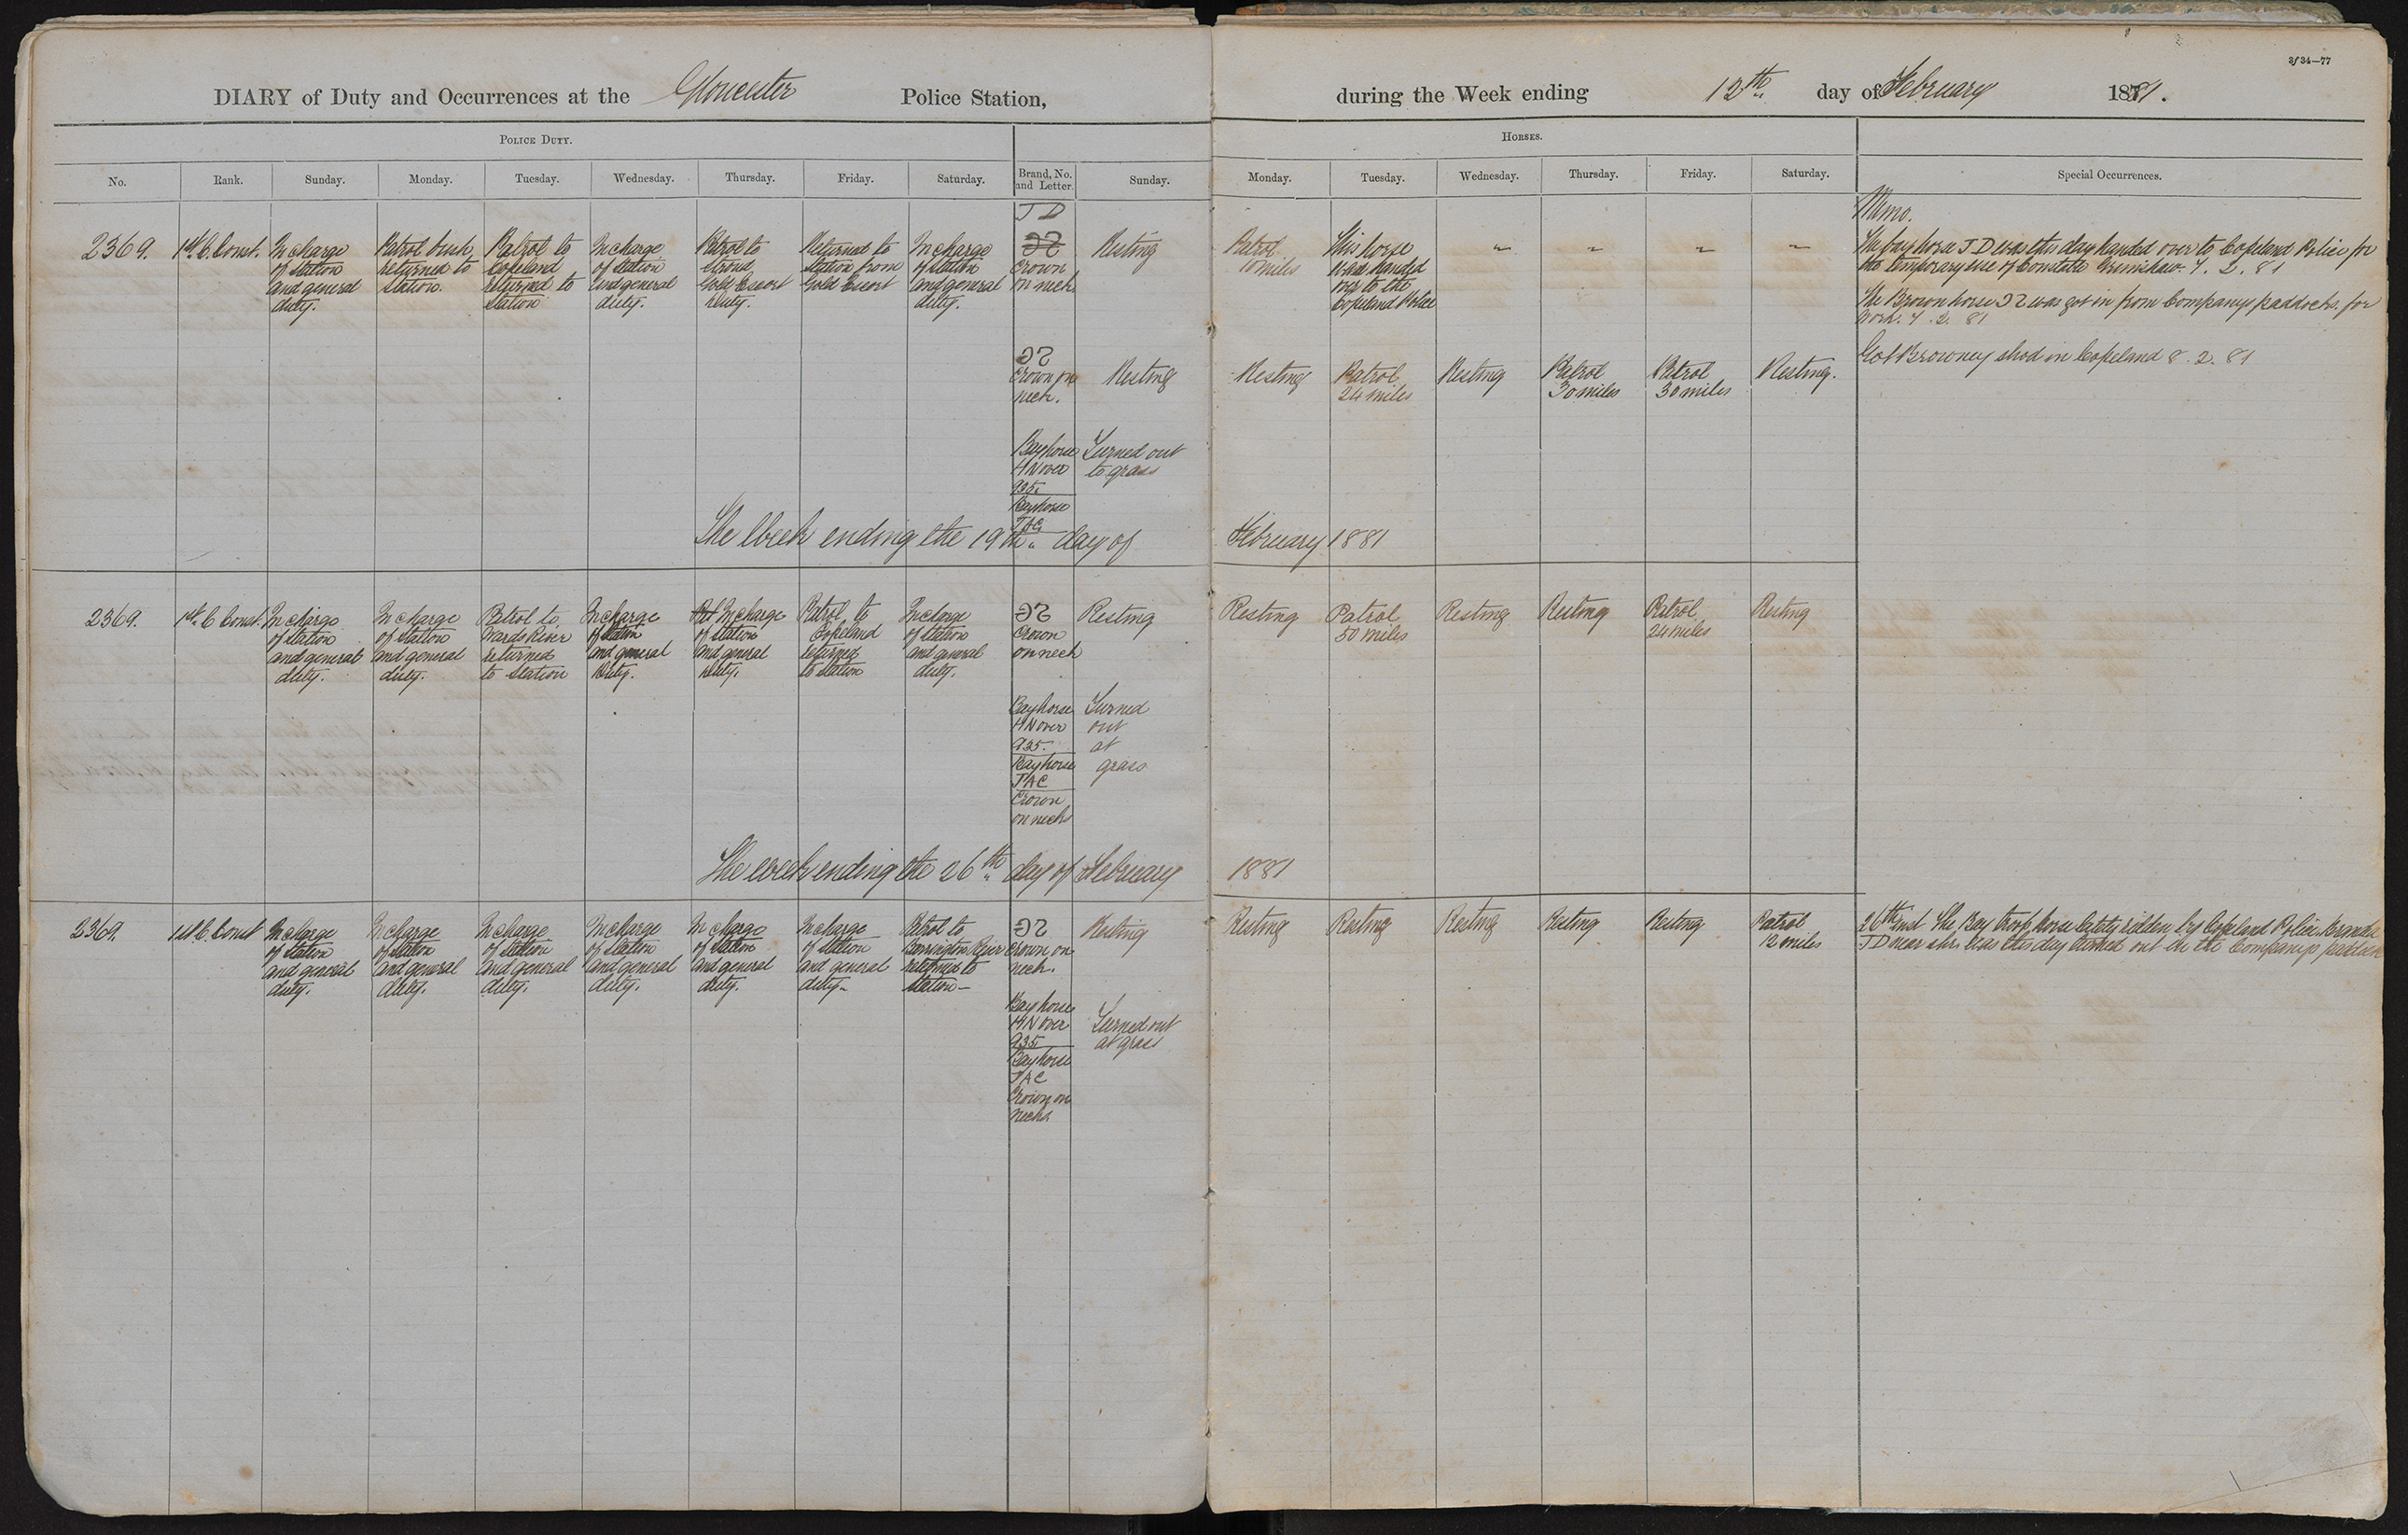 Diary of duty and occurrences at the Gloucester Police Station during the week ending the 12th day of February 1881